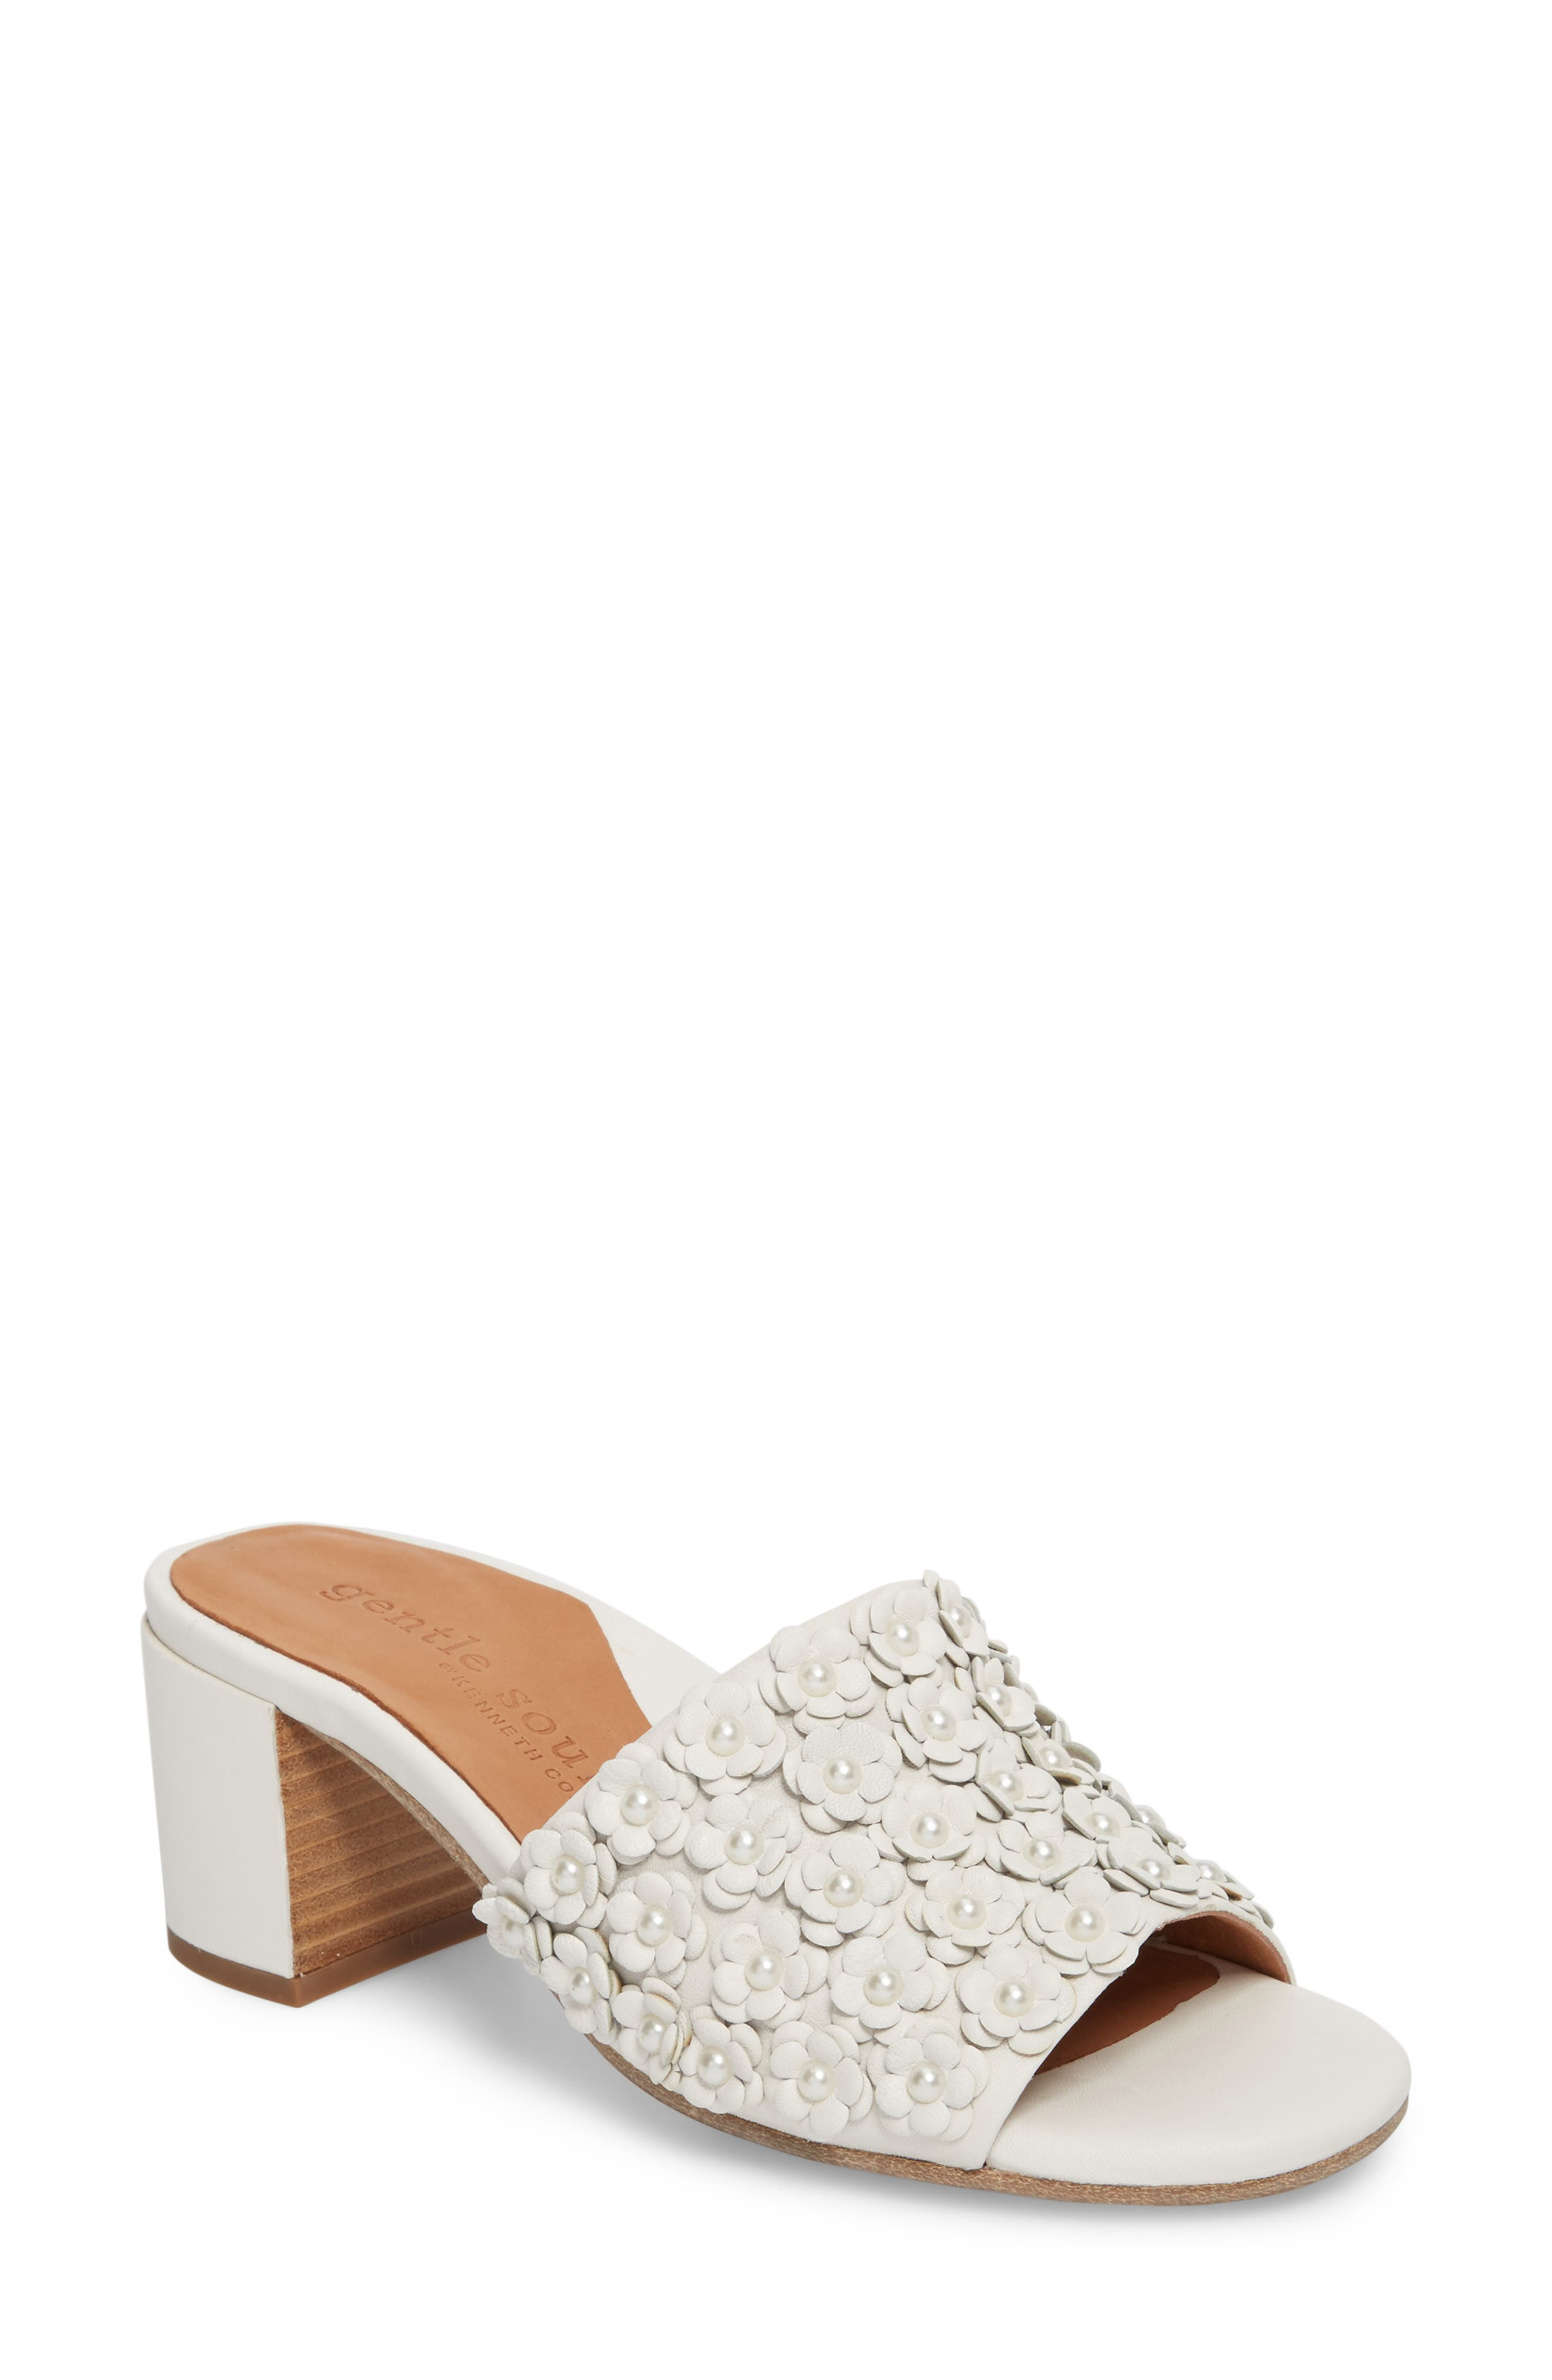 by Kenneth Cole Chantel Sandal,                             Main thumbnail 1, color,                             White Flowers Leather